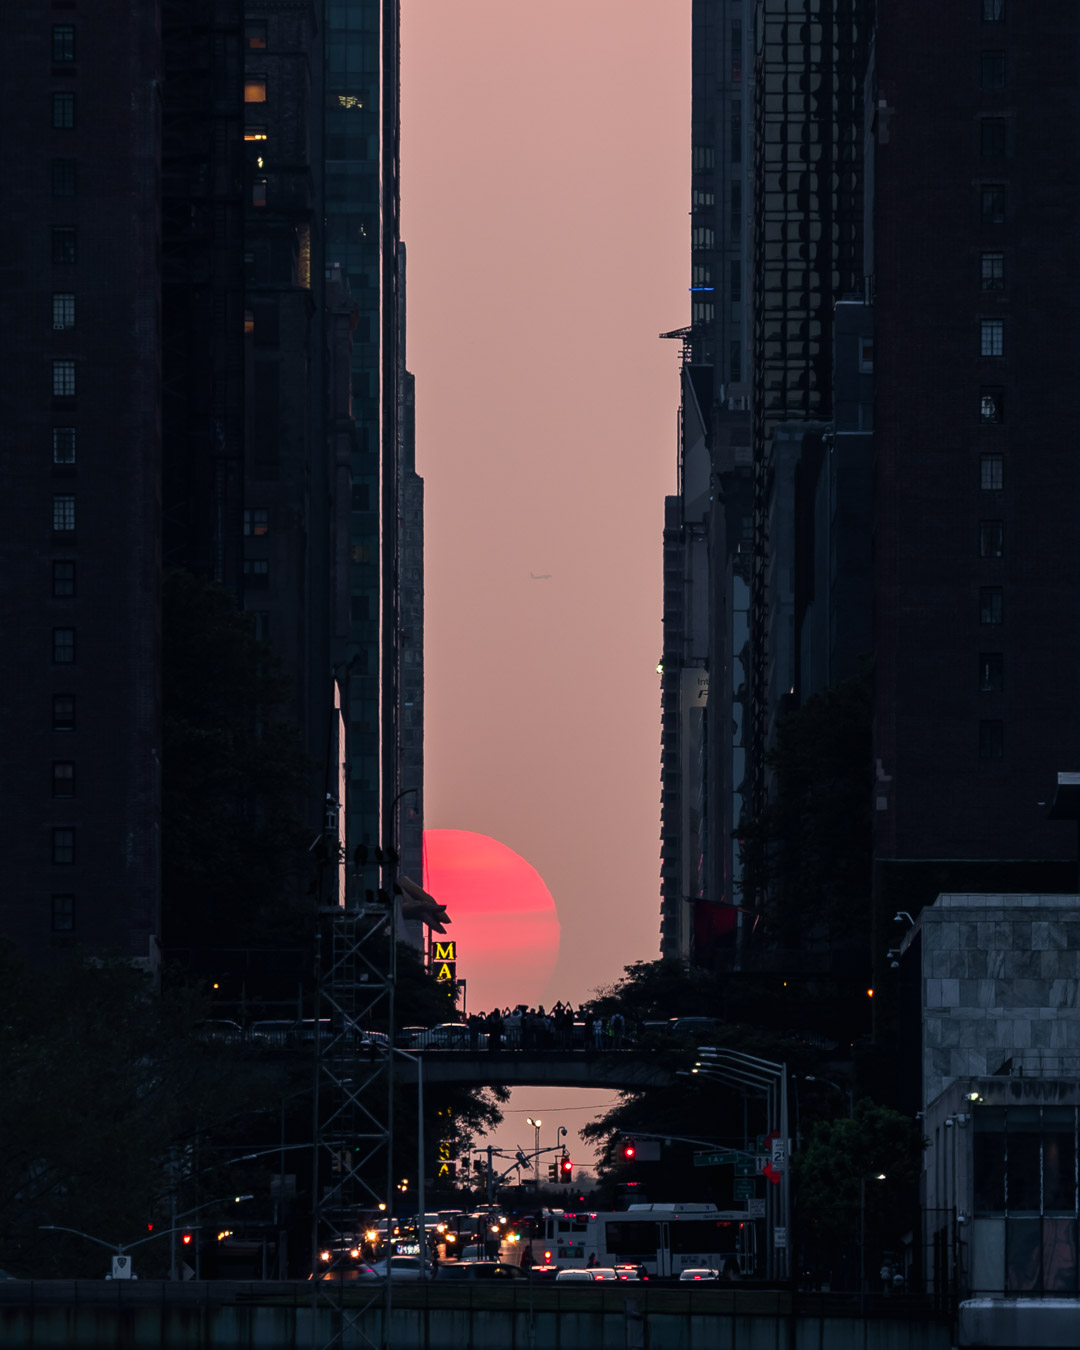 Photo captured by  Mike Lindle  during the  May 31st, 2019  Manhattanhenge from Gantry Plaza State Park, Long Island City. As the sun dipped further below the horizon, clouds blocked the full disc of the setting sun.